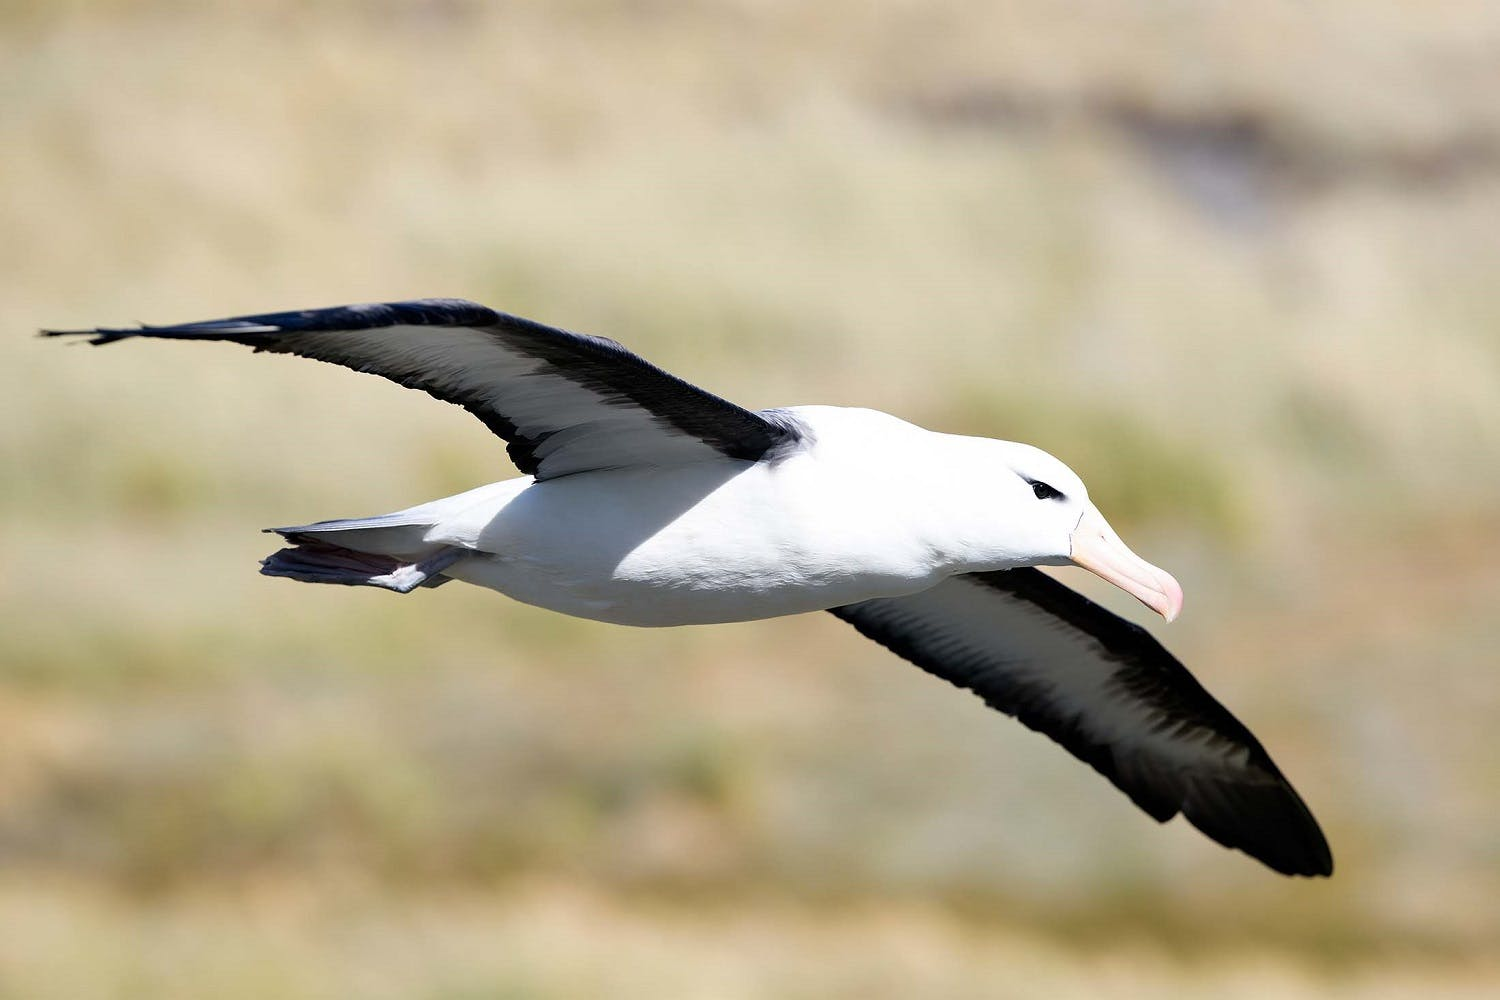 Wingspan of the Black-browed Albatross